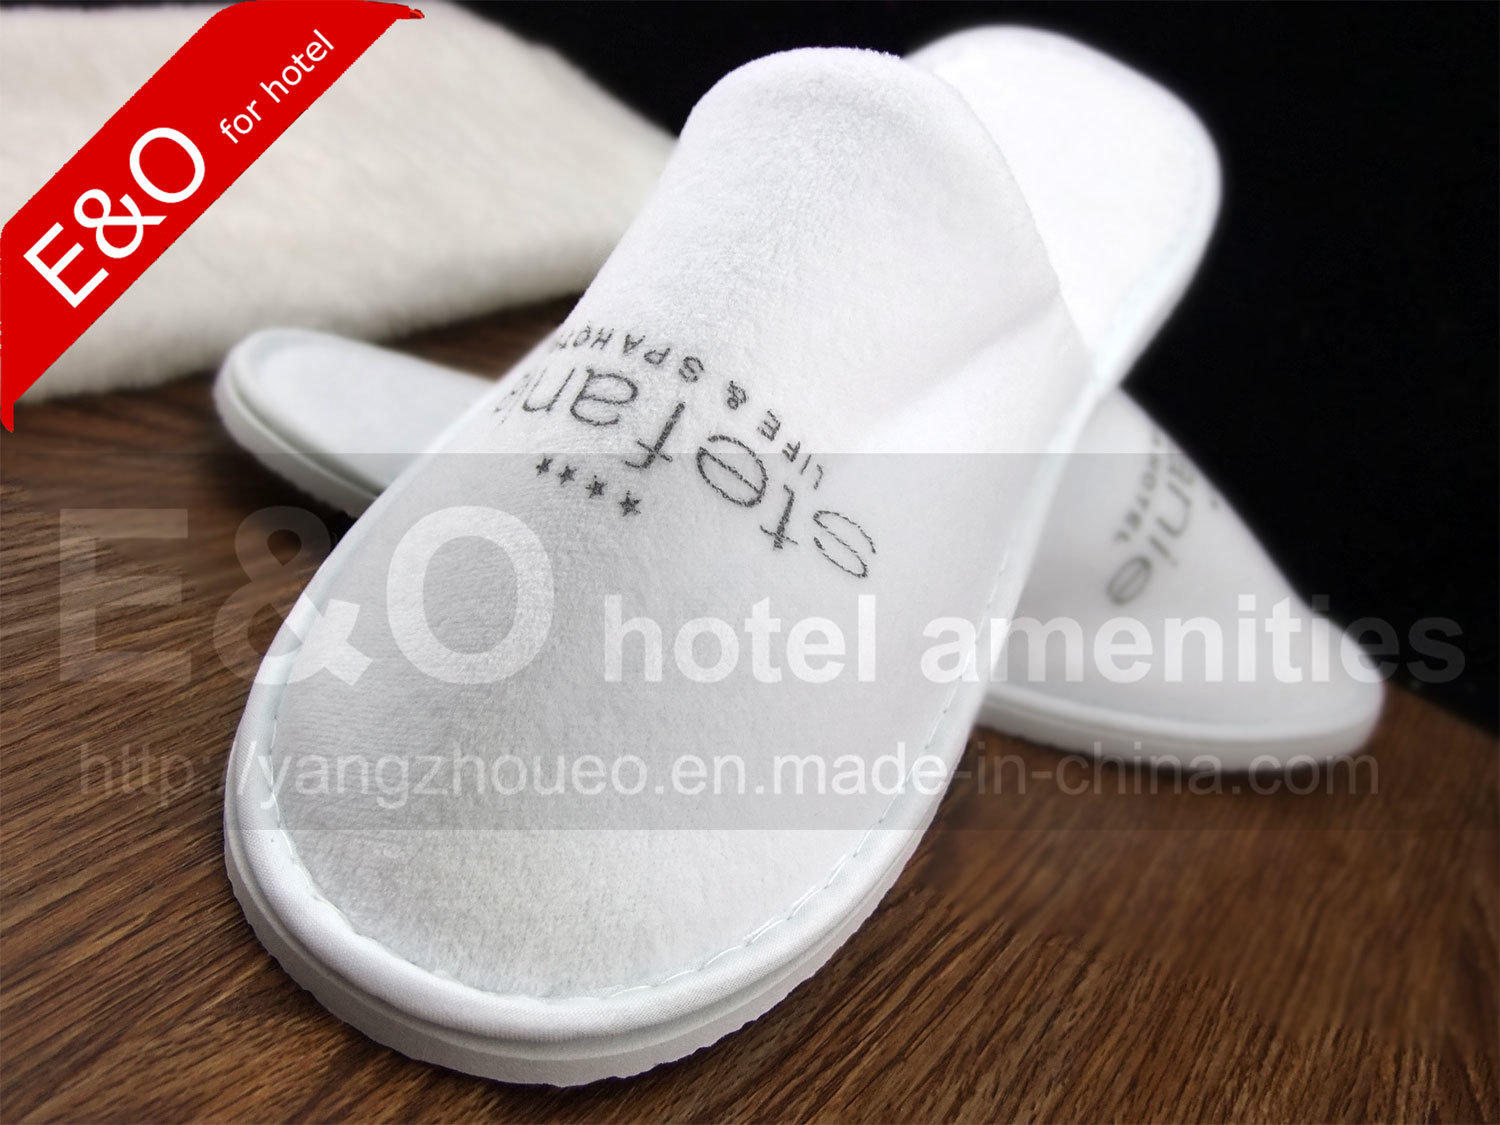 Disposable Velour Indoor Guestroom Guesthouse Hotel Slipper